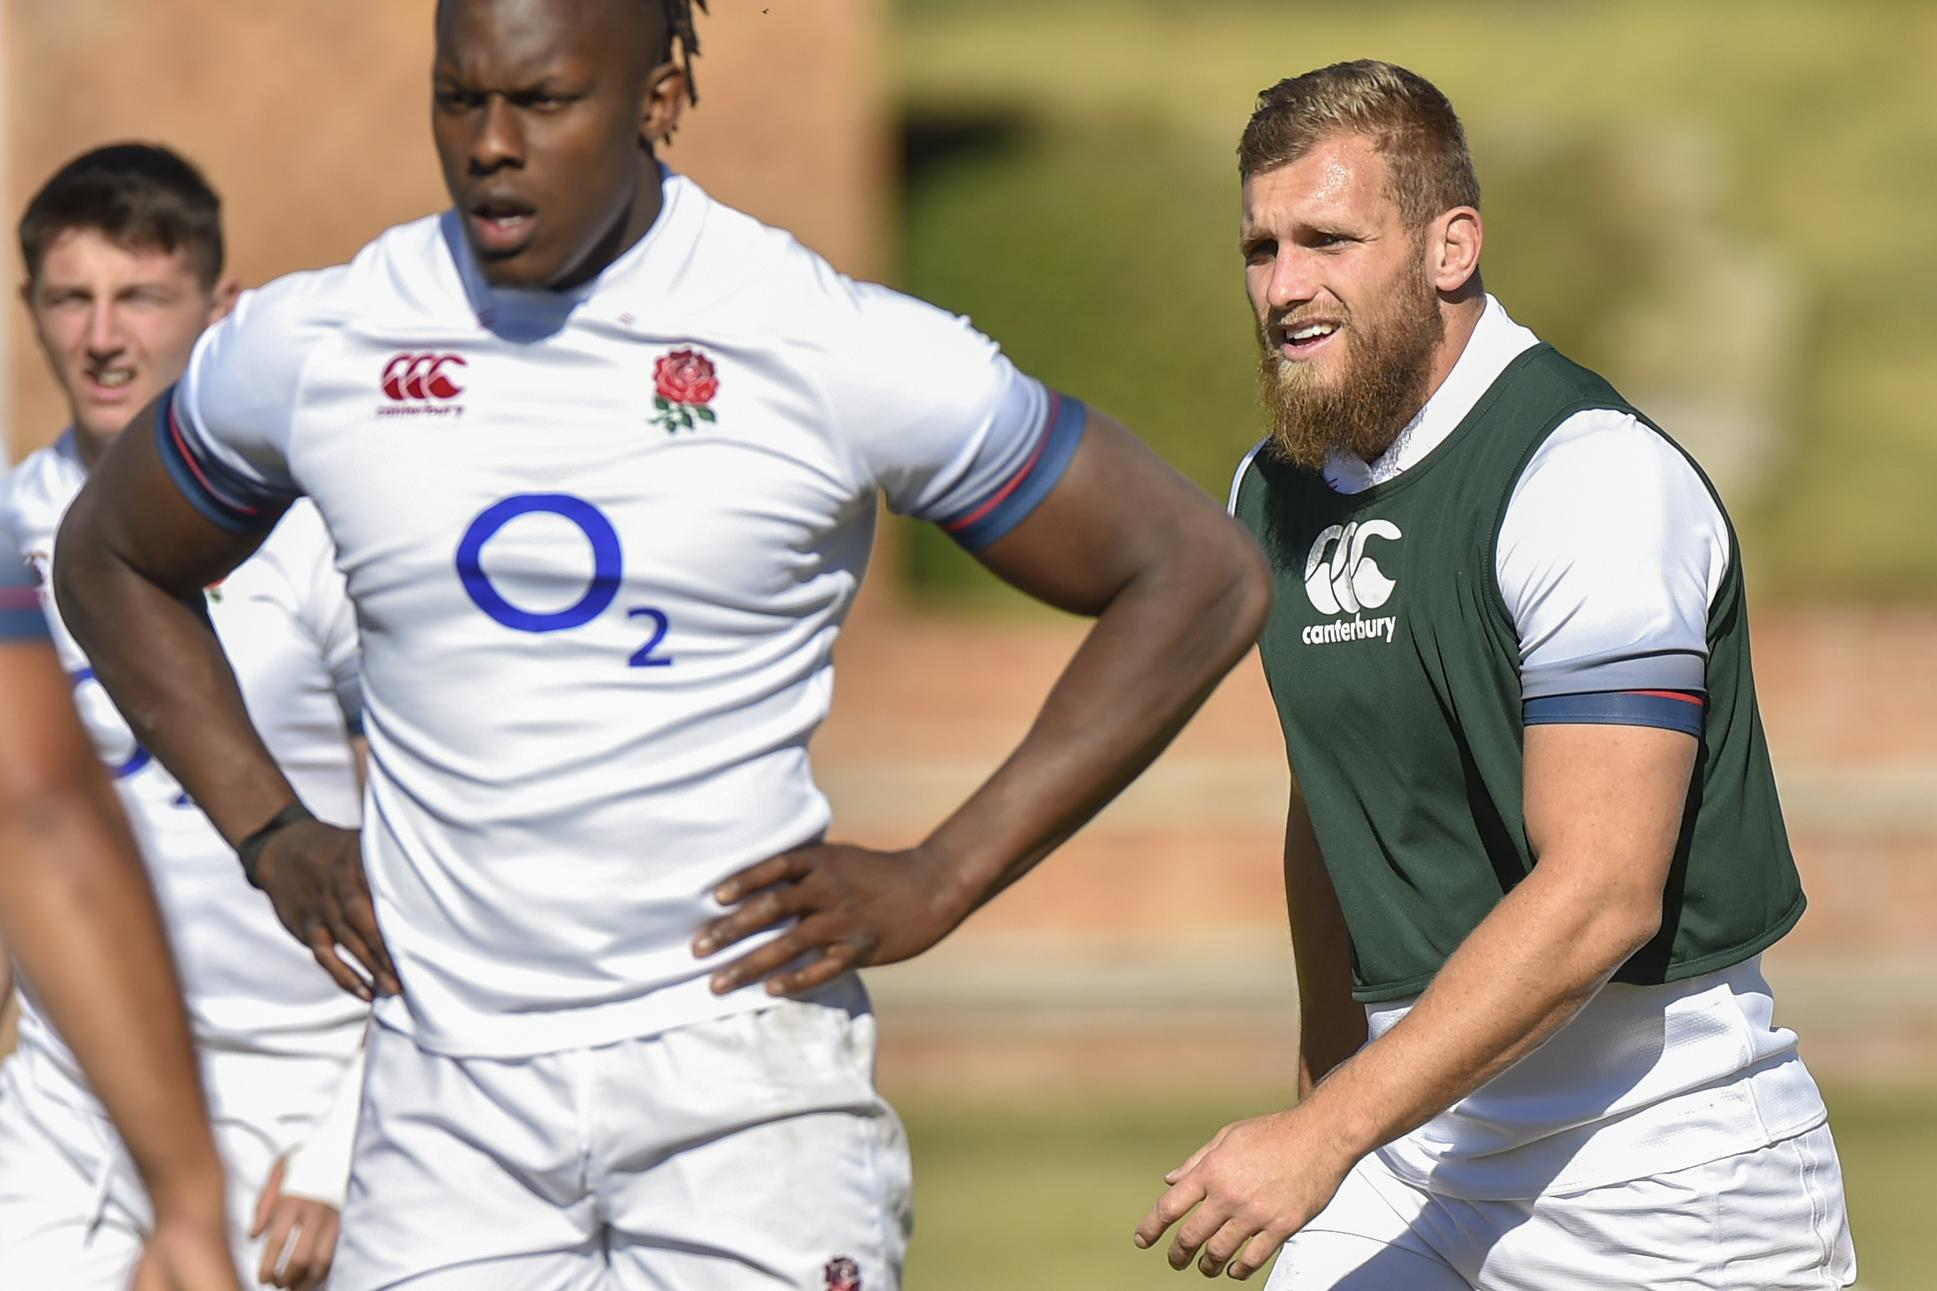 Kiwi Shields (right), will make his England debut in this new-look side for the Second Test against South Africa